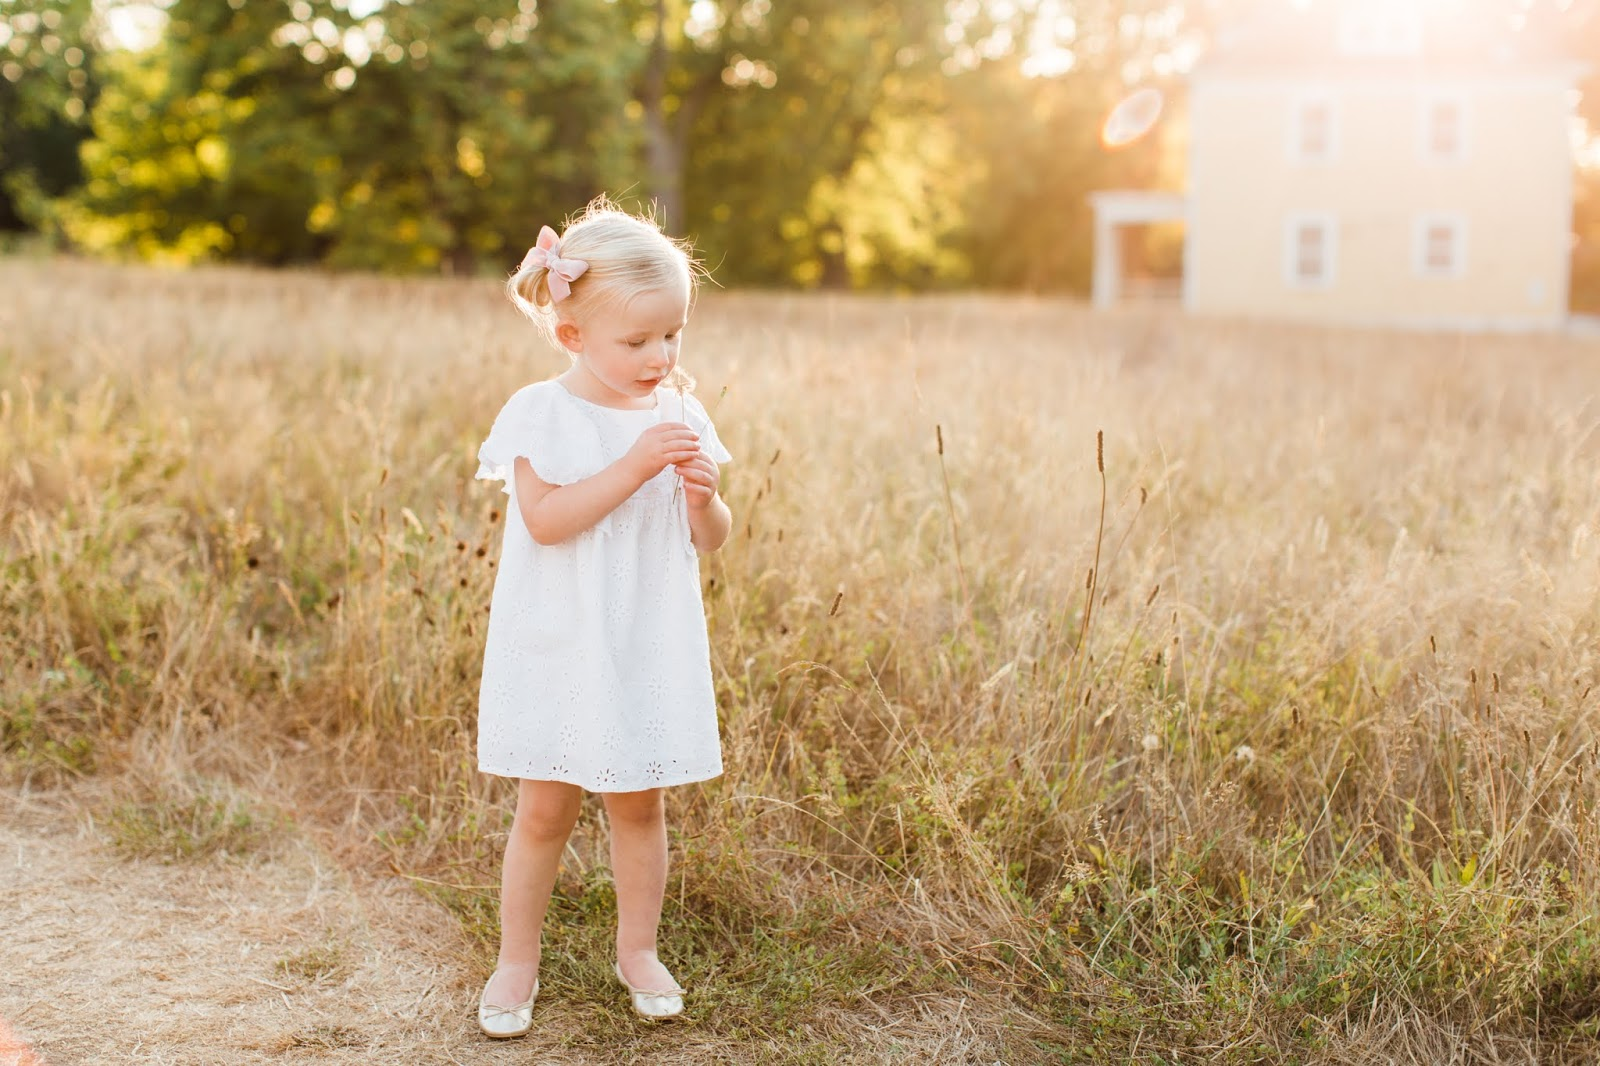 5 tips on family photos with a toddler